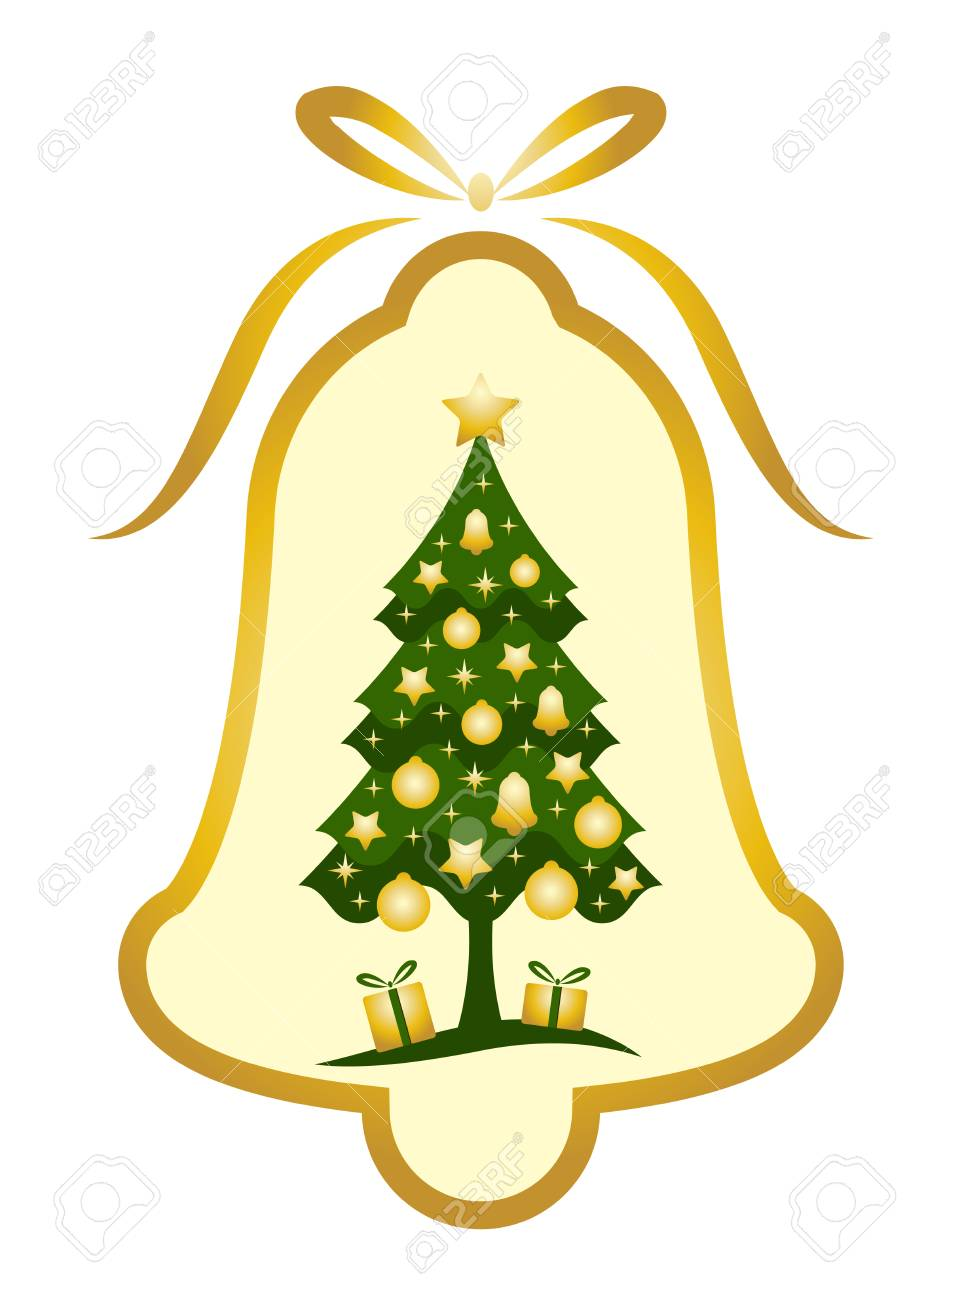 vector Christmas bell with Christmas tree decor on white background Stock Vector - 8244774